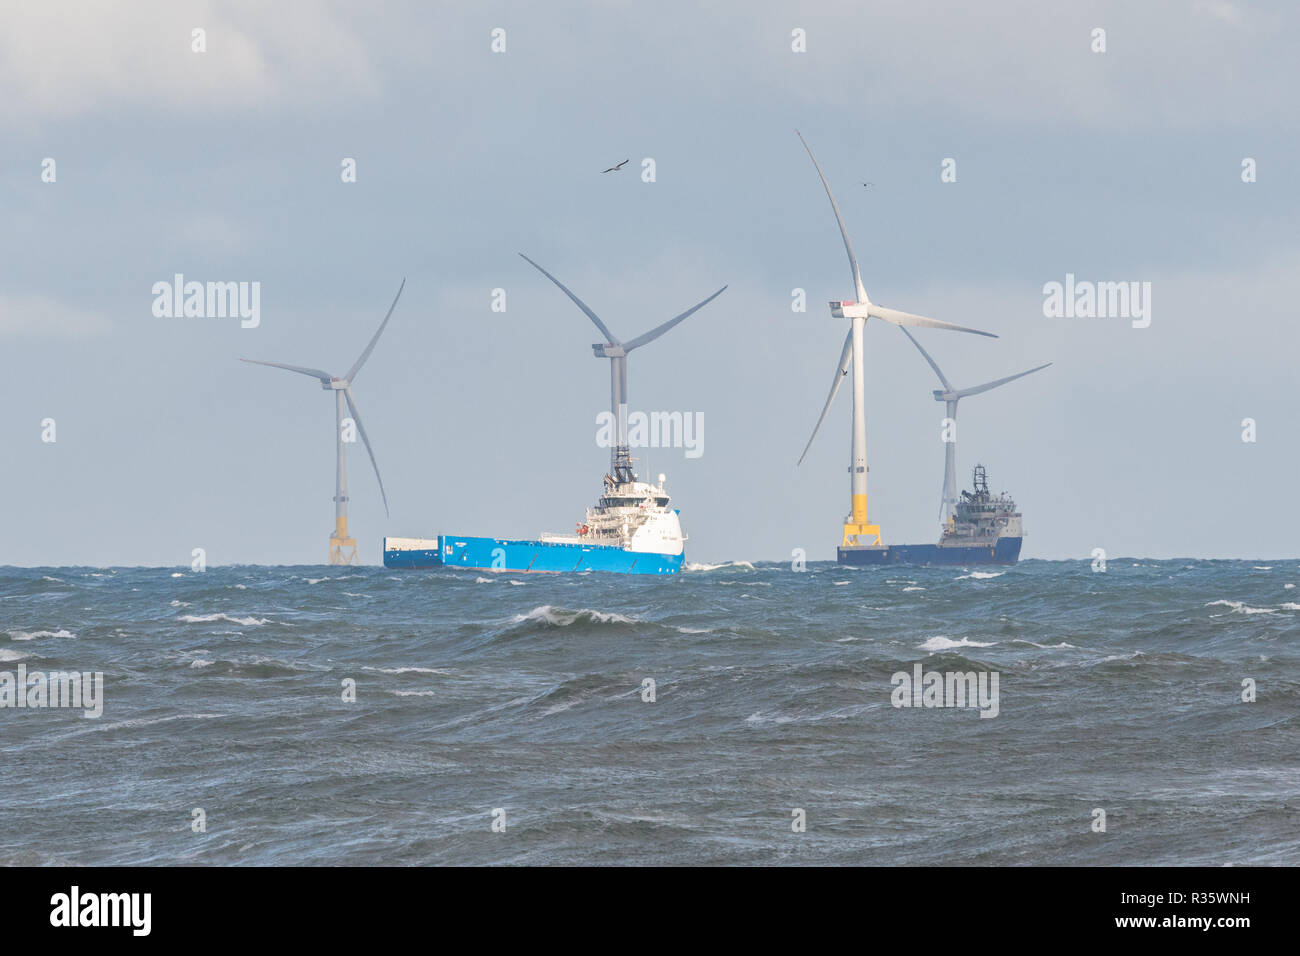 Aberdeen Offshore Wind Farm - European Offshore Wind Deployment Centre - and offshore supply ships, Aberdeen, Scotland, UK - Stock Image